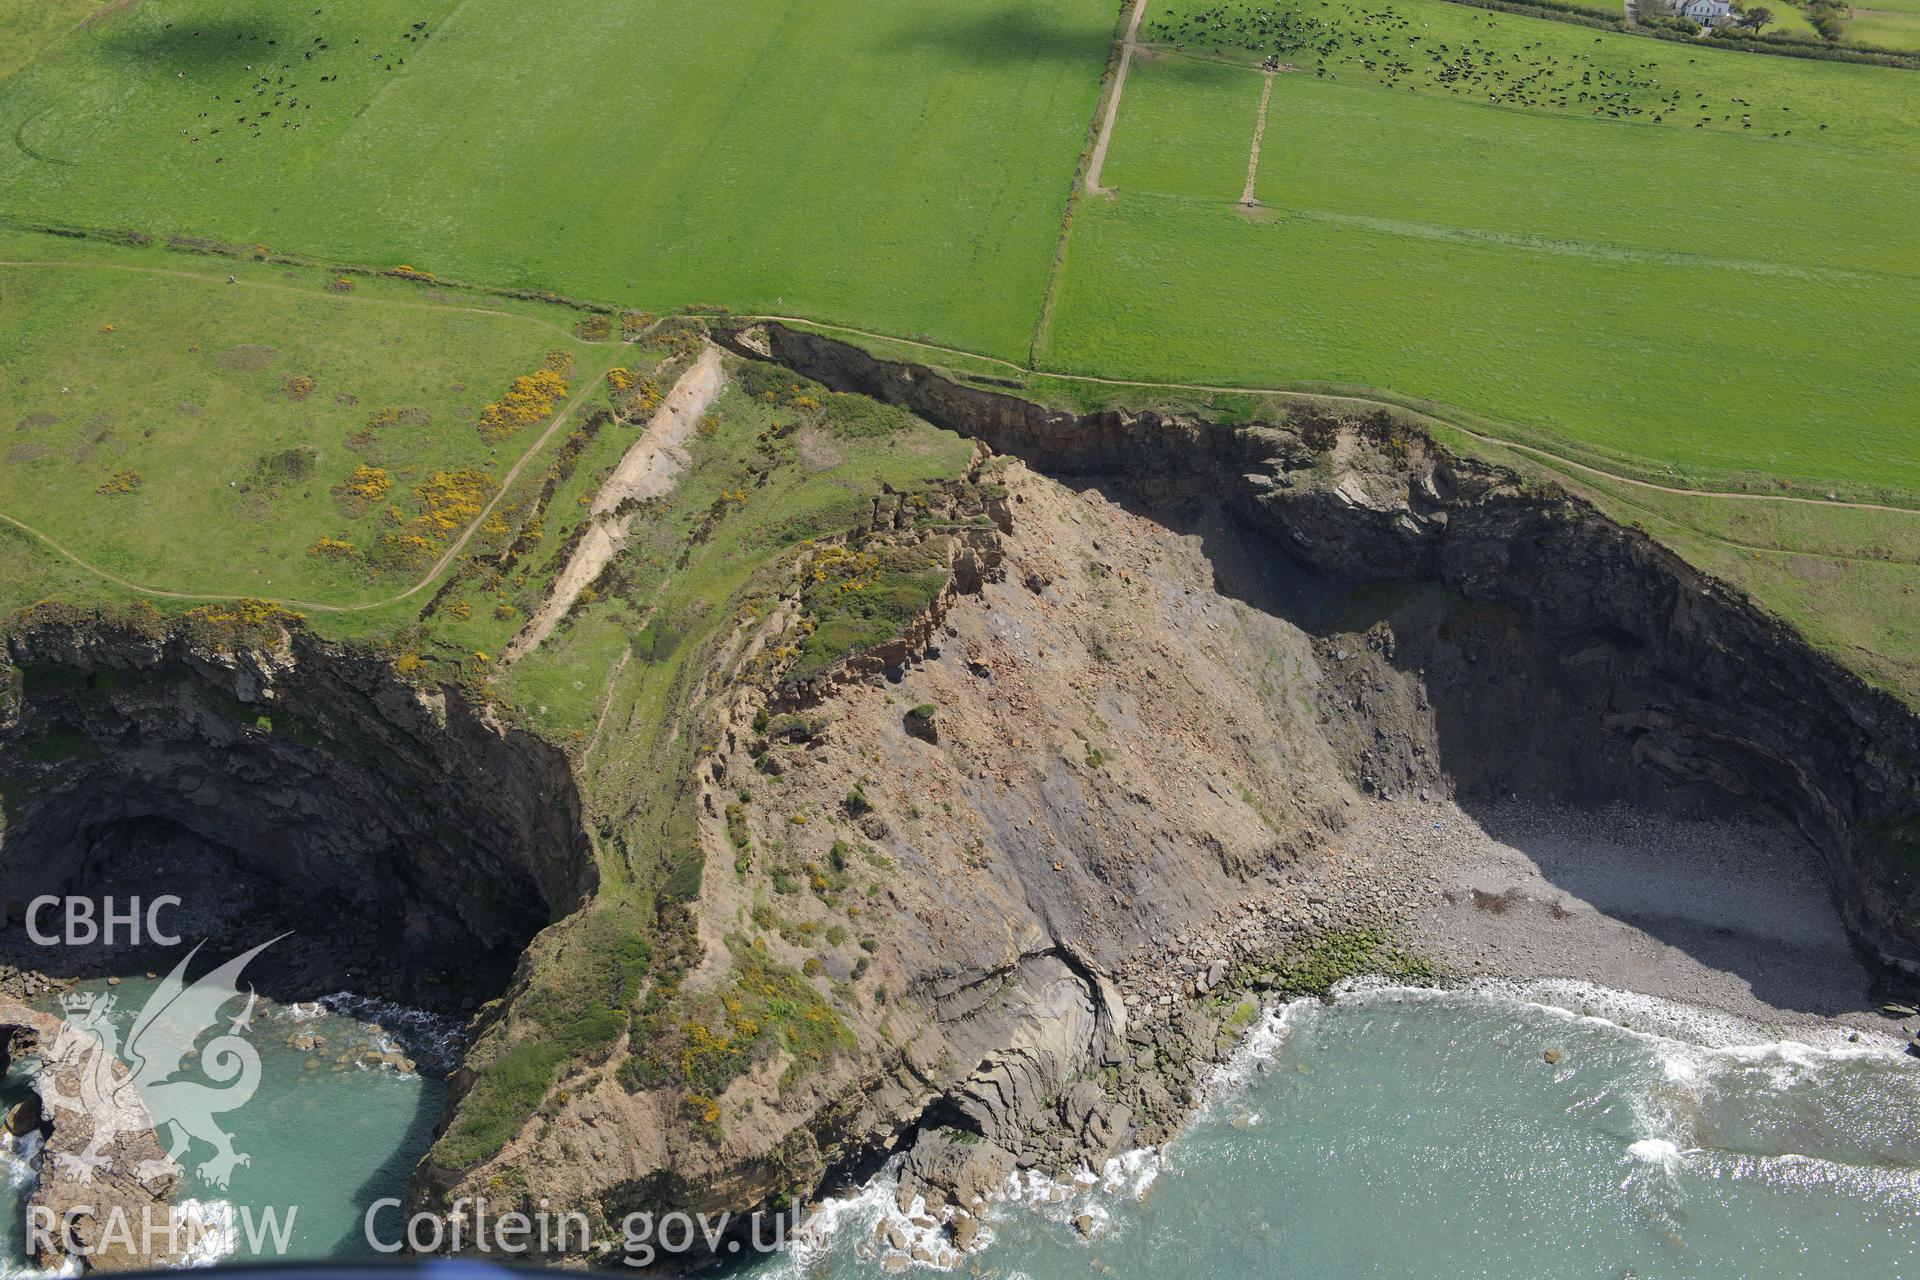 Black Point Rath promontory fort, near Haverford West. Oblique aerial photograph taken during the Royal Commission's programme of archaeological aerial reconnaissance by Toby Driver on 13th May 2015.